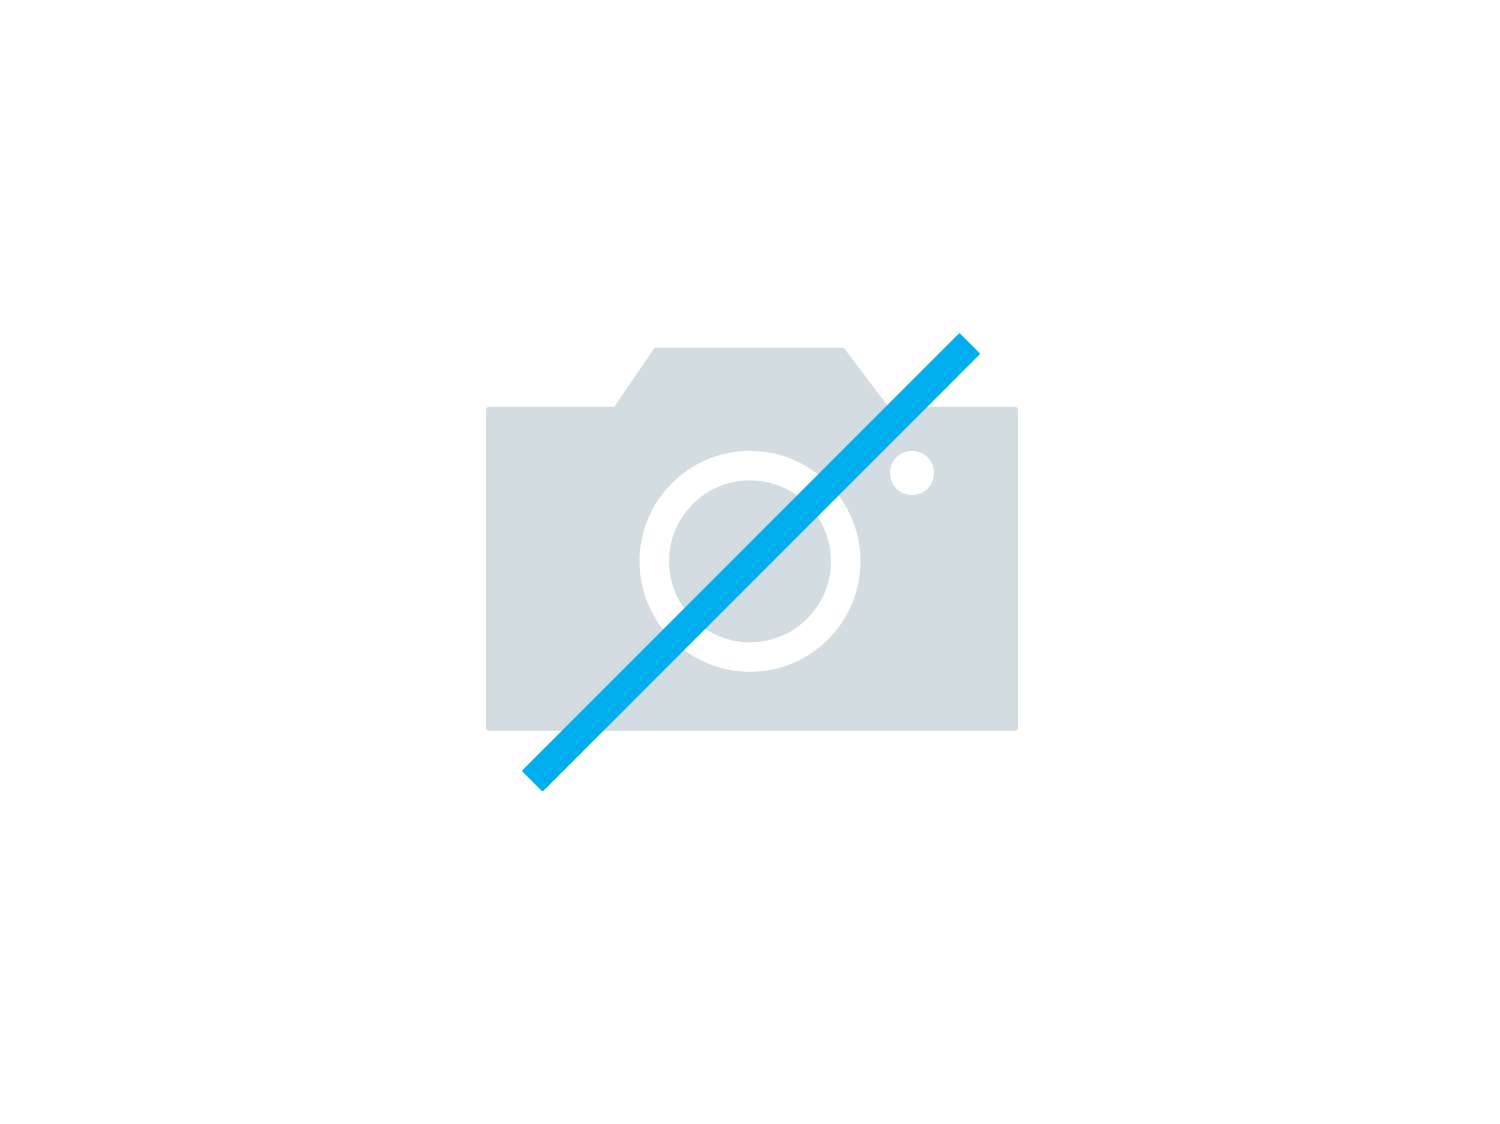 Relaxzetel Grizzly lederlook zwart